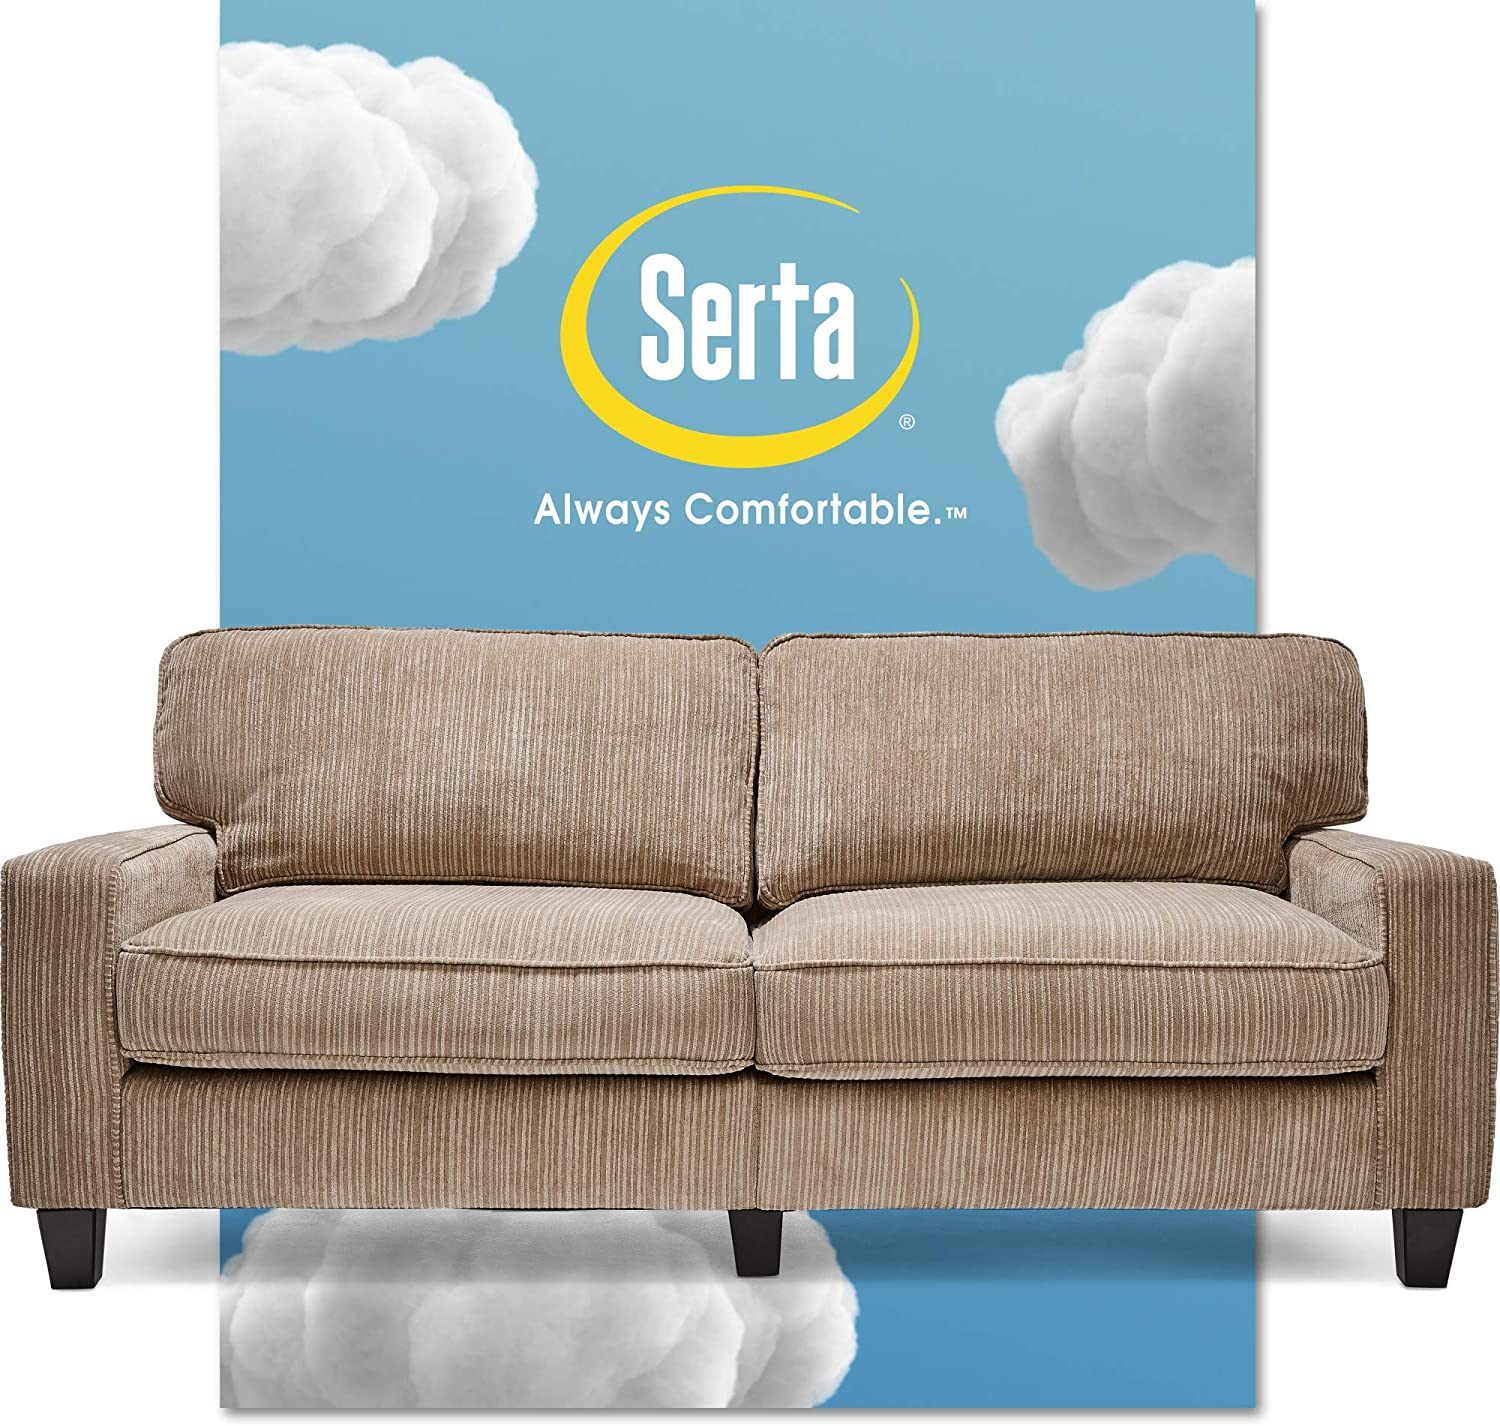 - Amazon.com: Serta Palisades Upholstered Sofas For Living Room